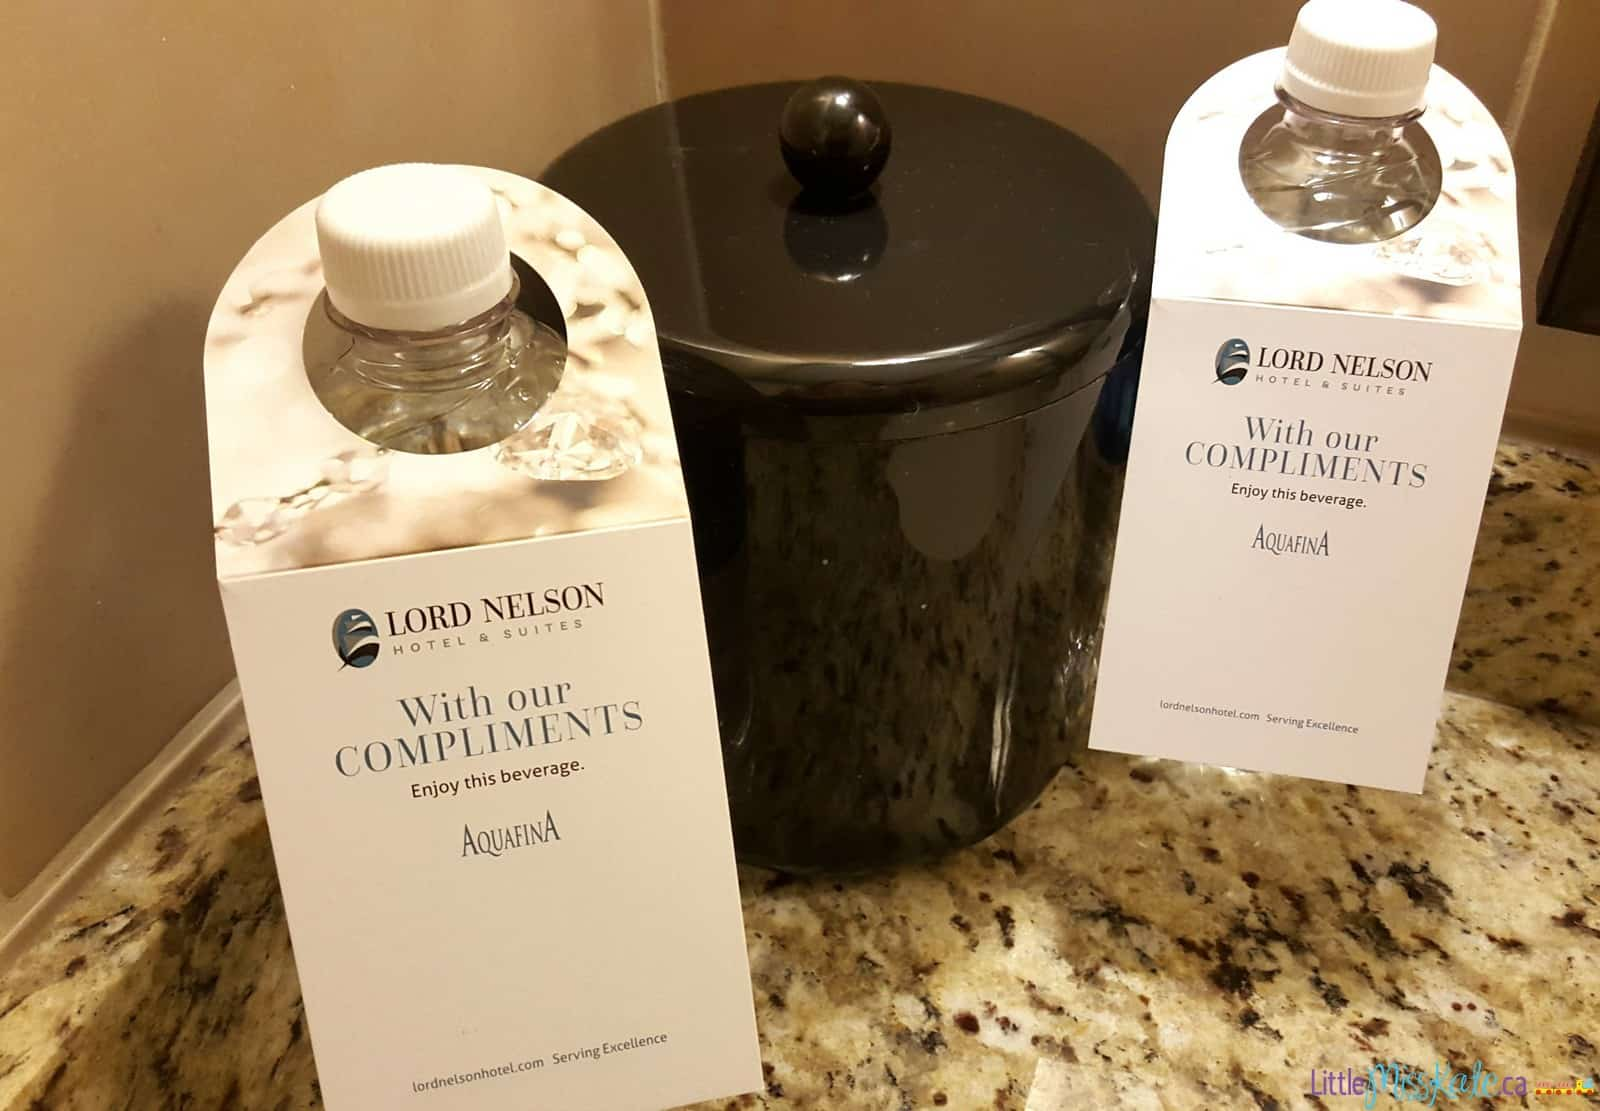 Lord nelson hotel and suites downtown halifax review bottle water